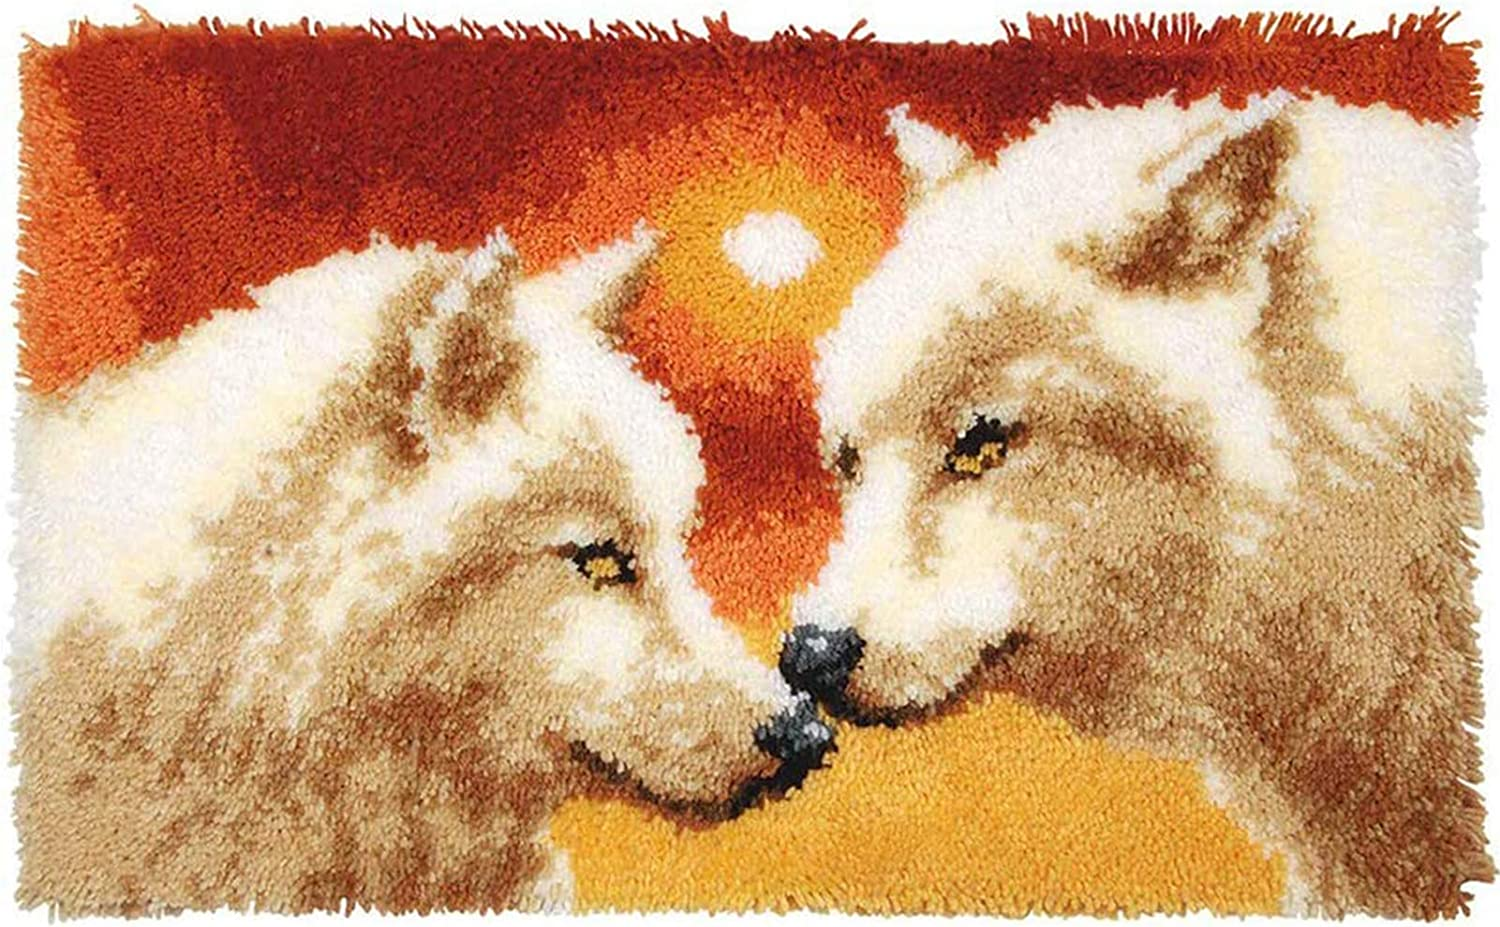 Wolf DIY Latch Hook Kit Rug Making Crafts for Adults Kids Beginners Carpet Embroidery Kit Tapestry Kits Handmade Home Decoration Mats Creative Gift 52Cmx38cm